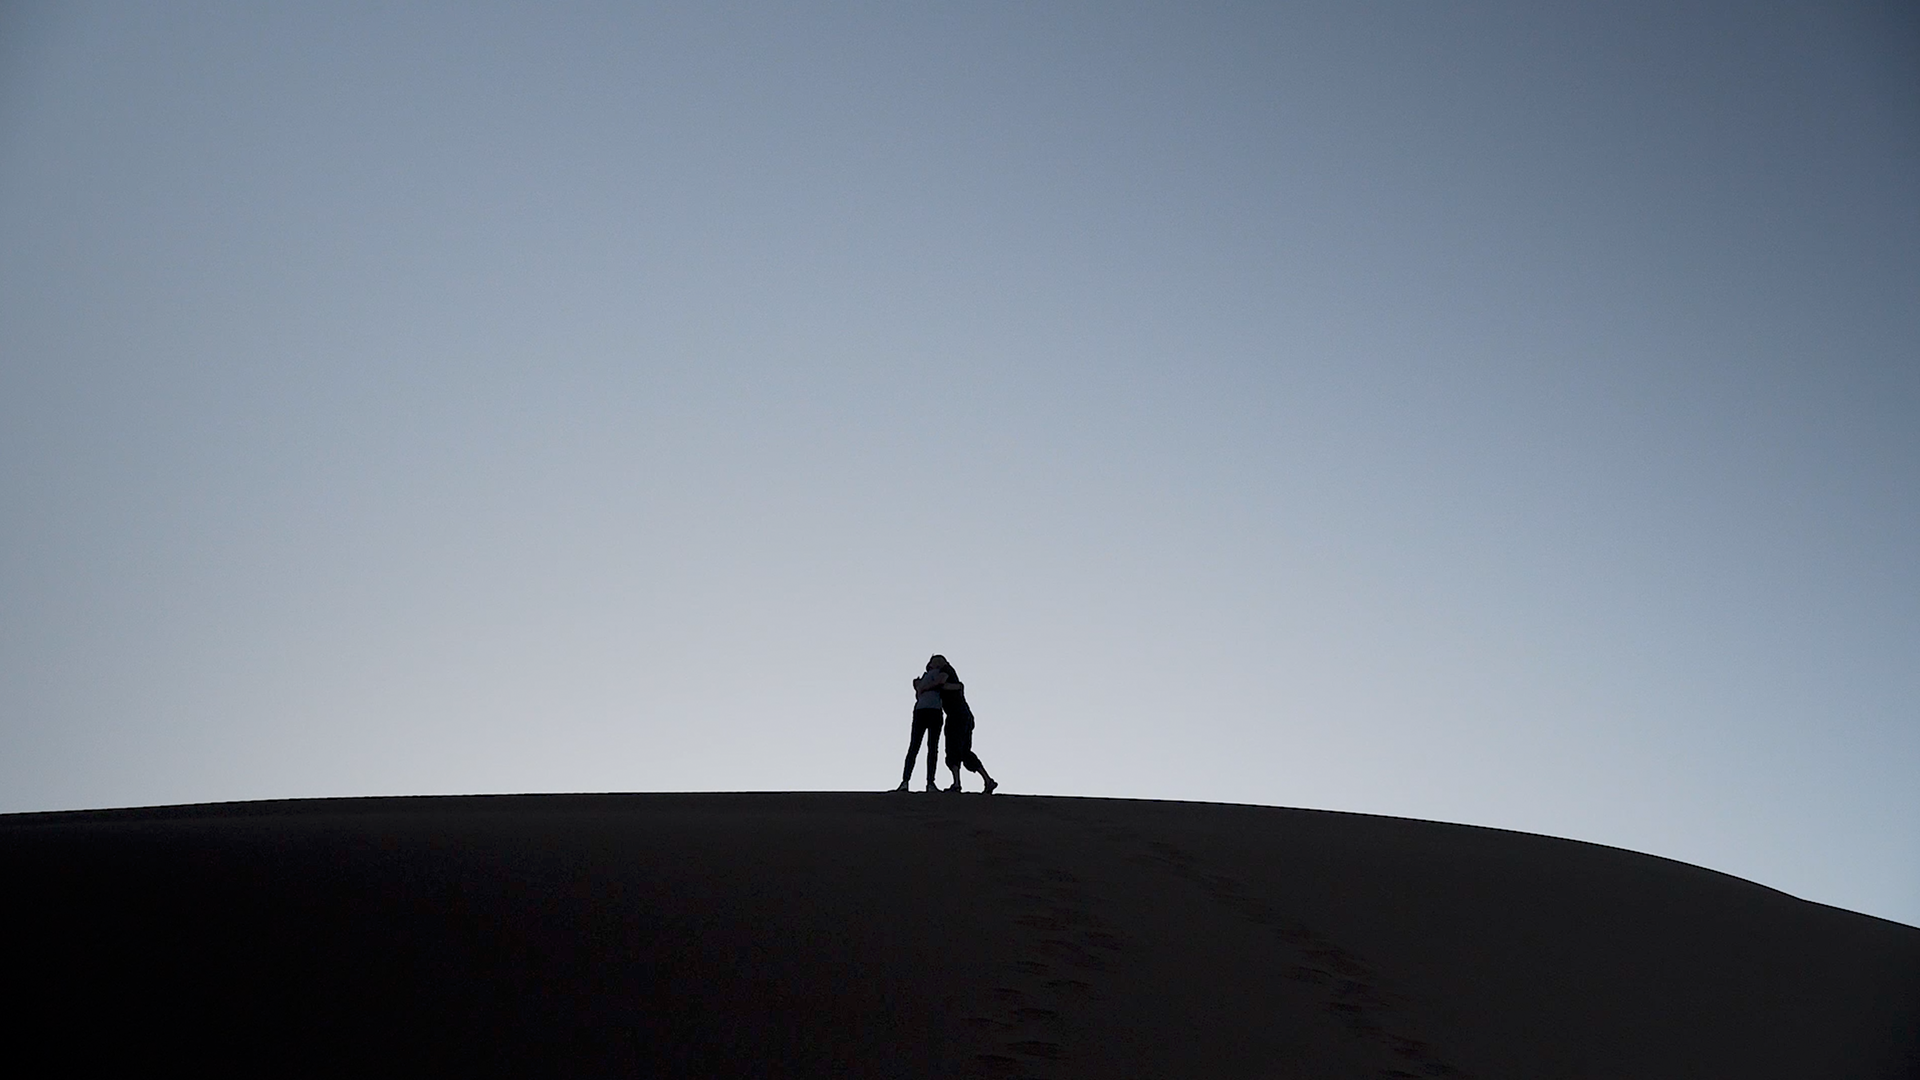 2 people seen as a silhouette standing on a dune in the moroccan dessert in the evening